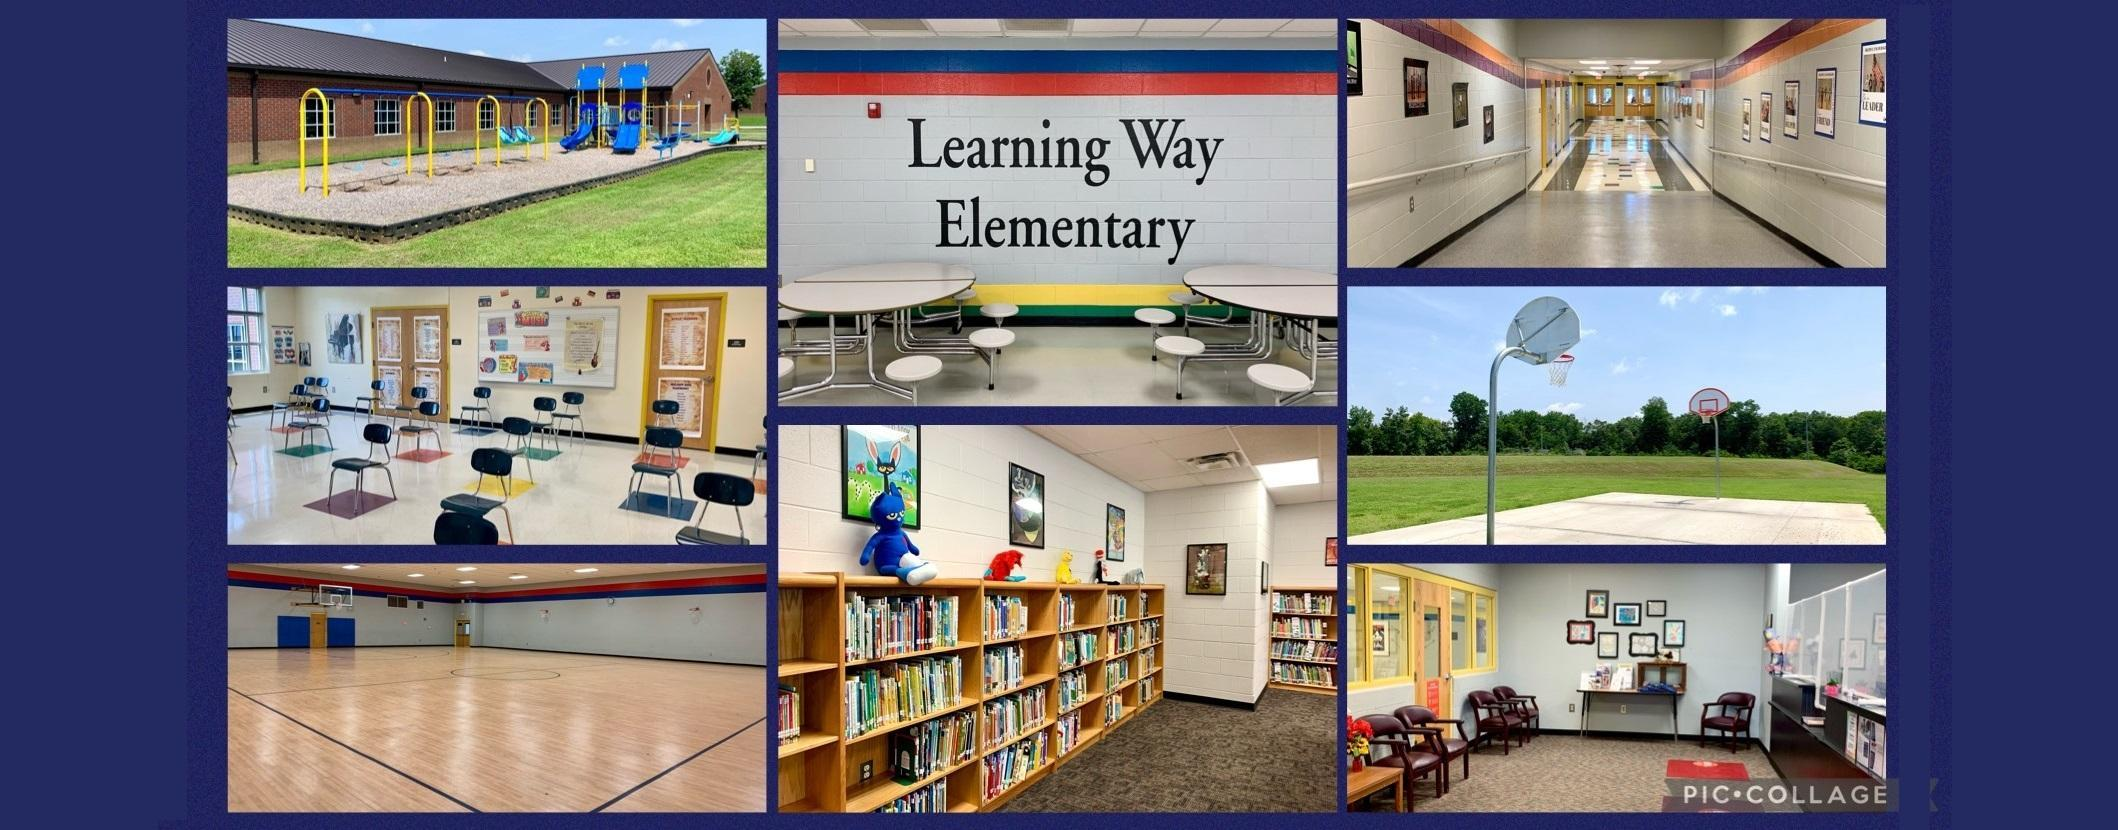 Welcome to Learning Way! Image